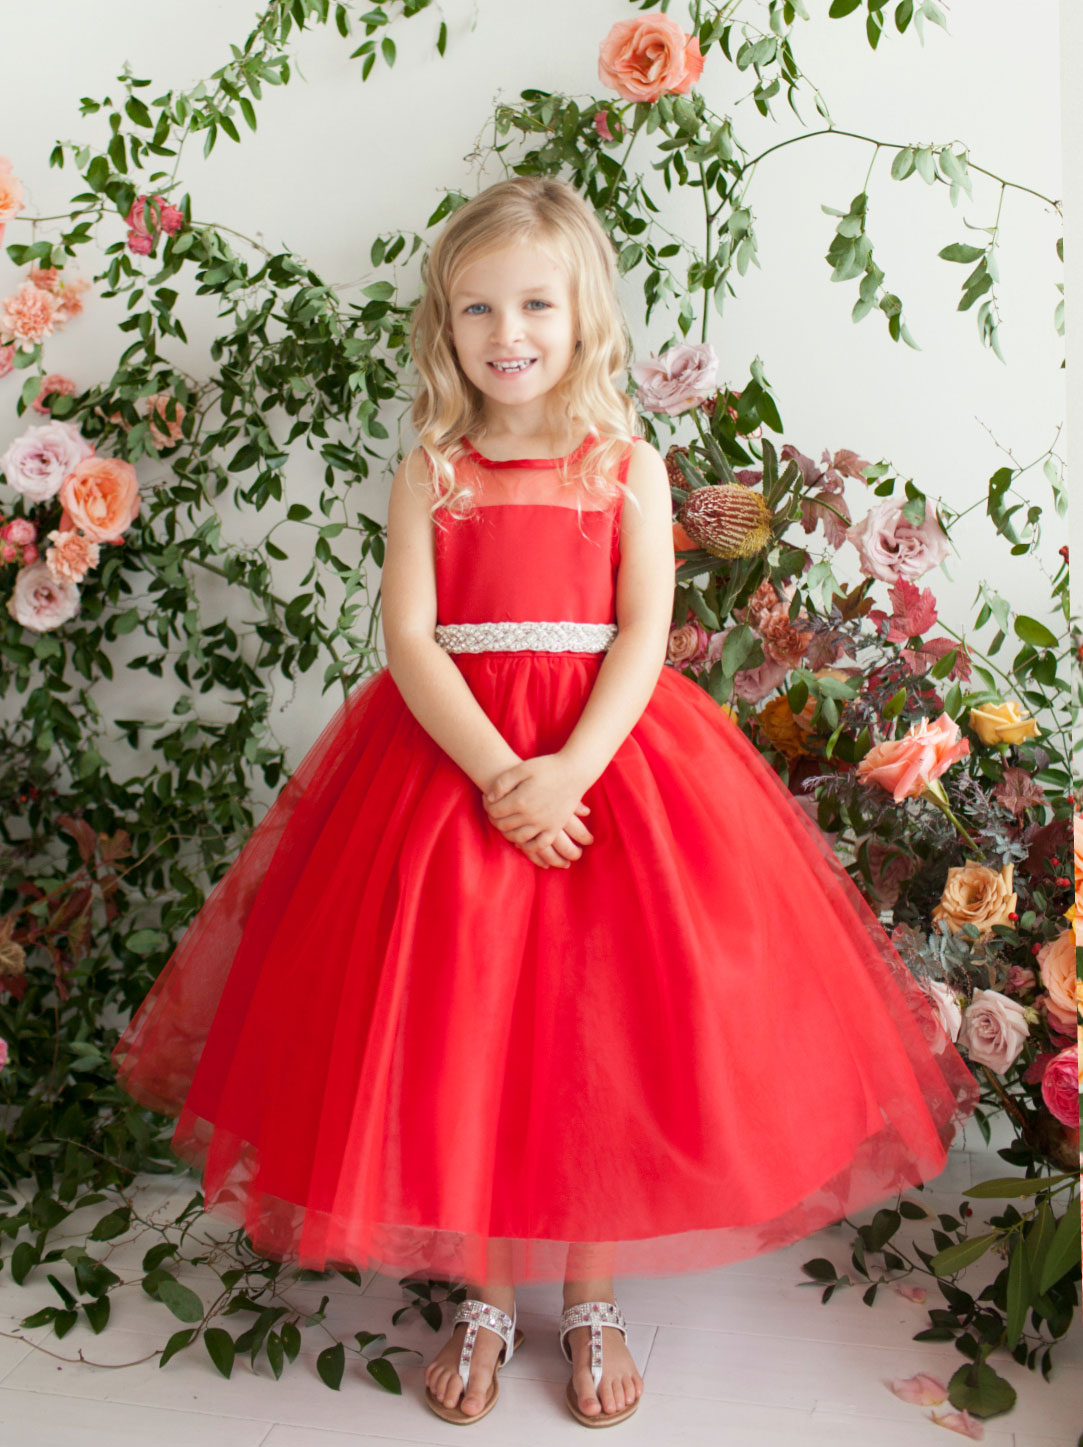 TT 5702R Girls Dress Style 5702 RED Tulle and Organza